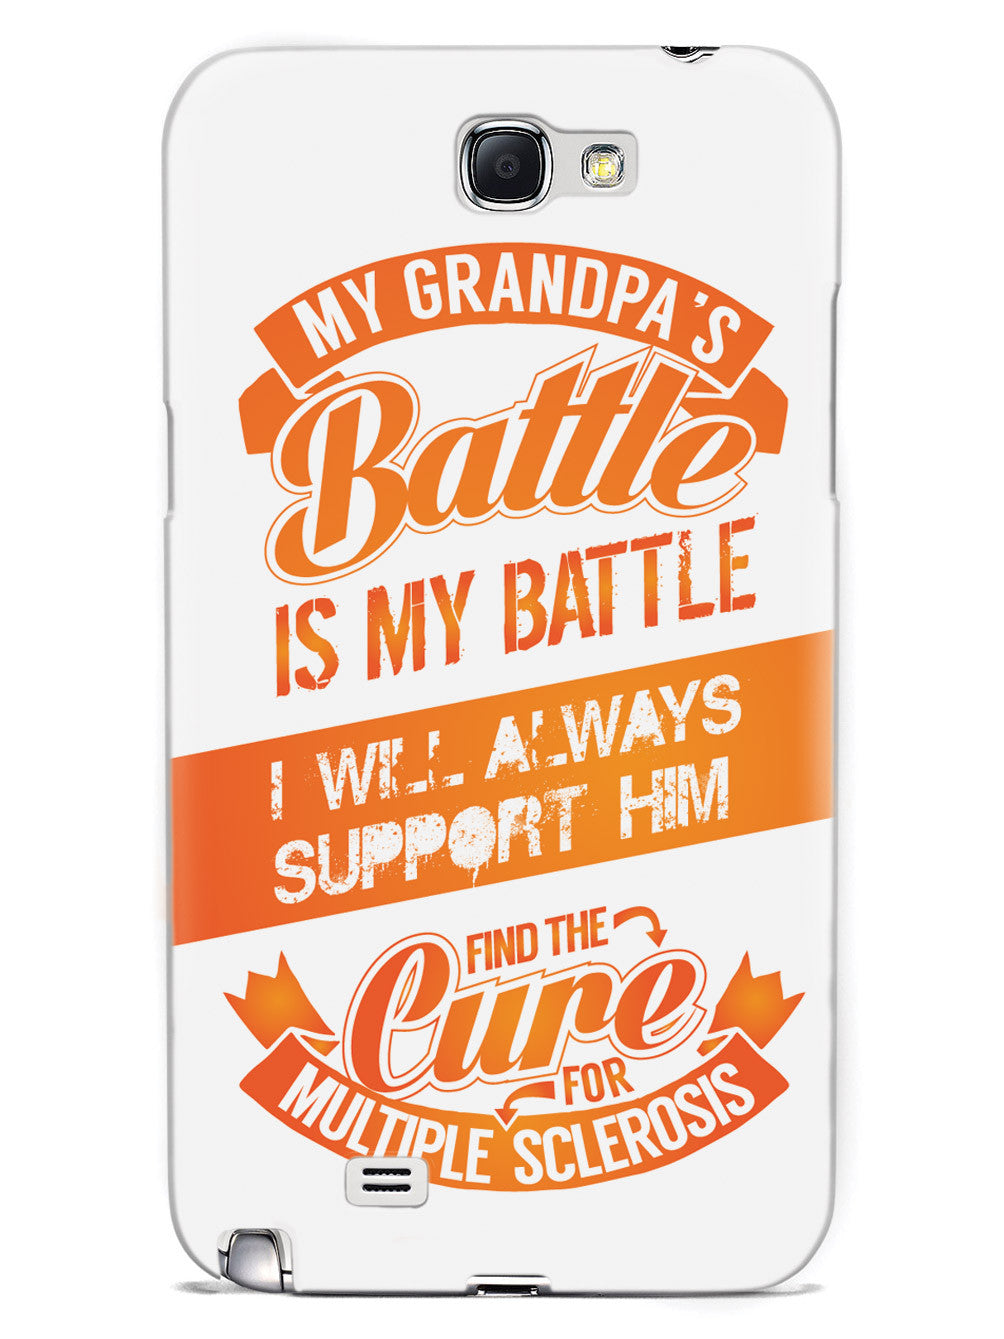 My Grandpa's Battle - Multiple Sclerosis Awareness/Support Case